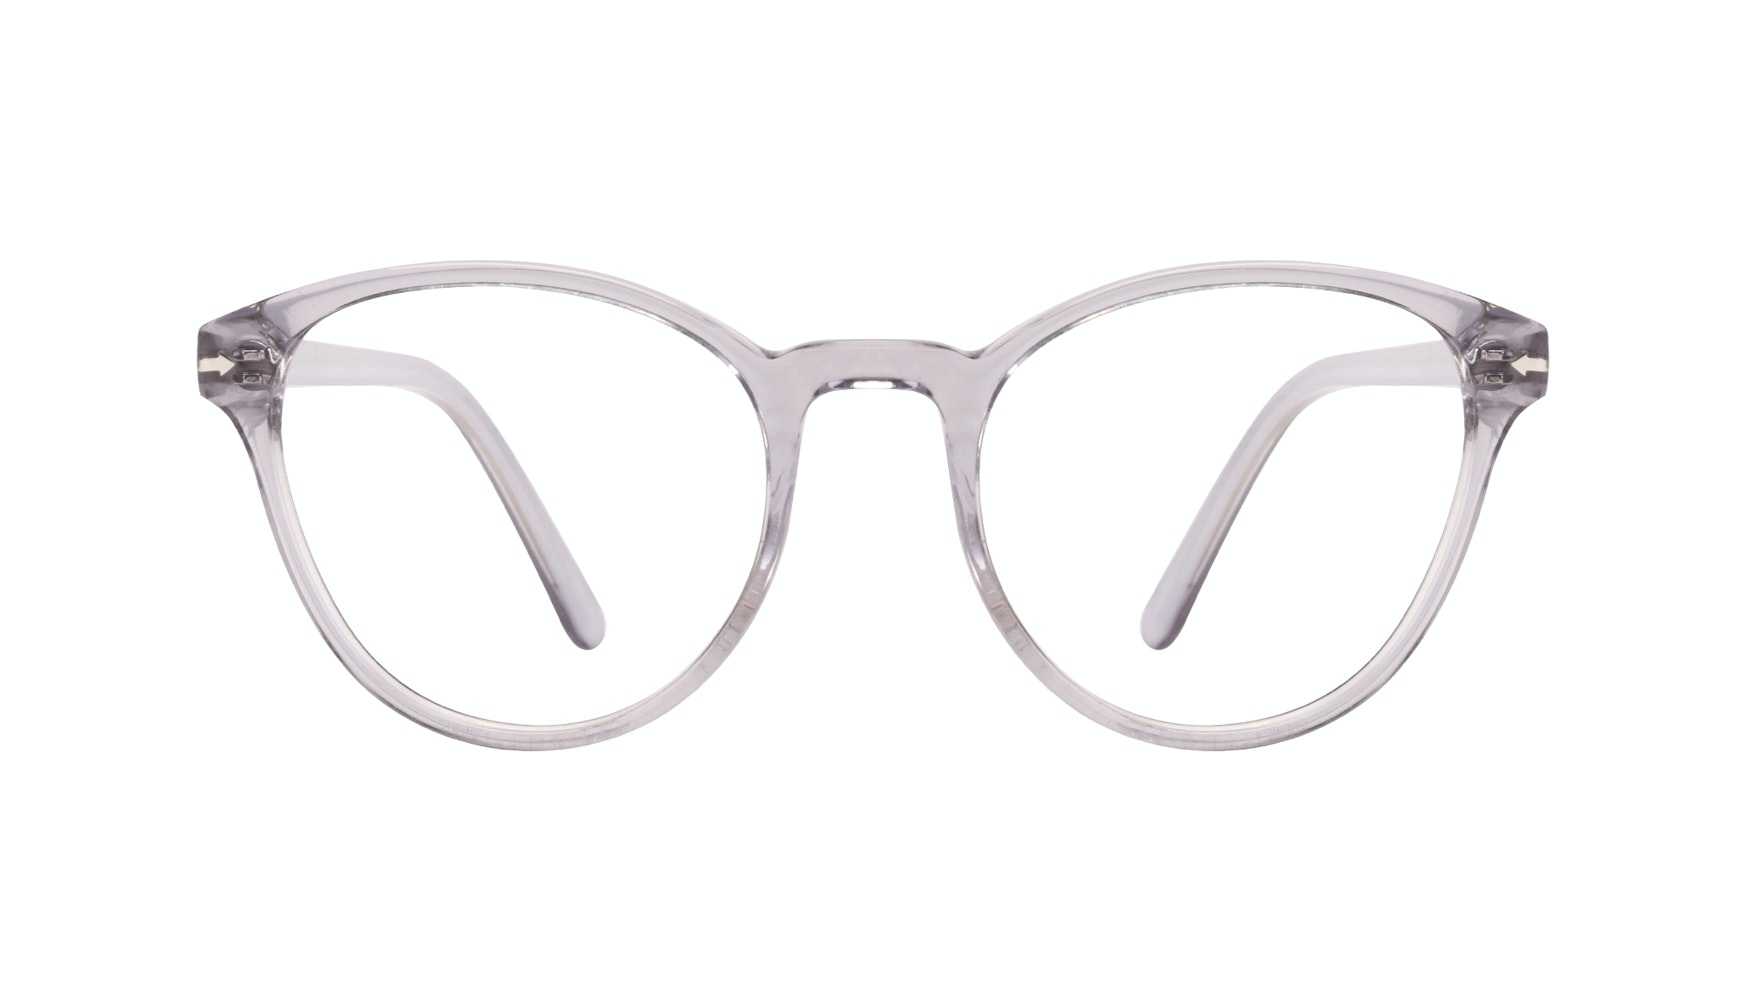 Affordable Fashion Glasses Round Eyeglasses Women London Fog